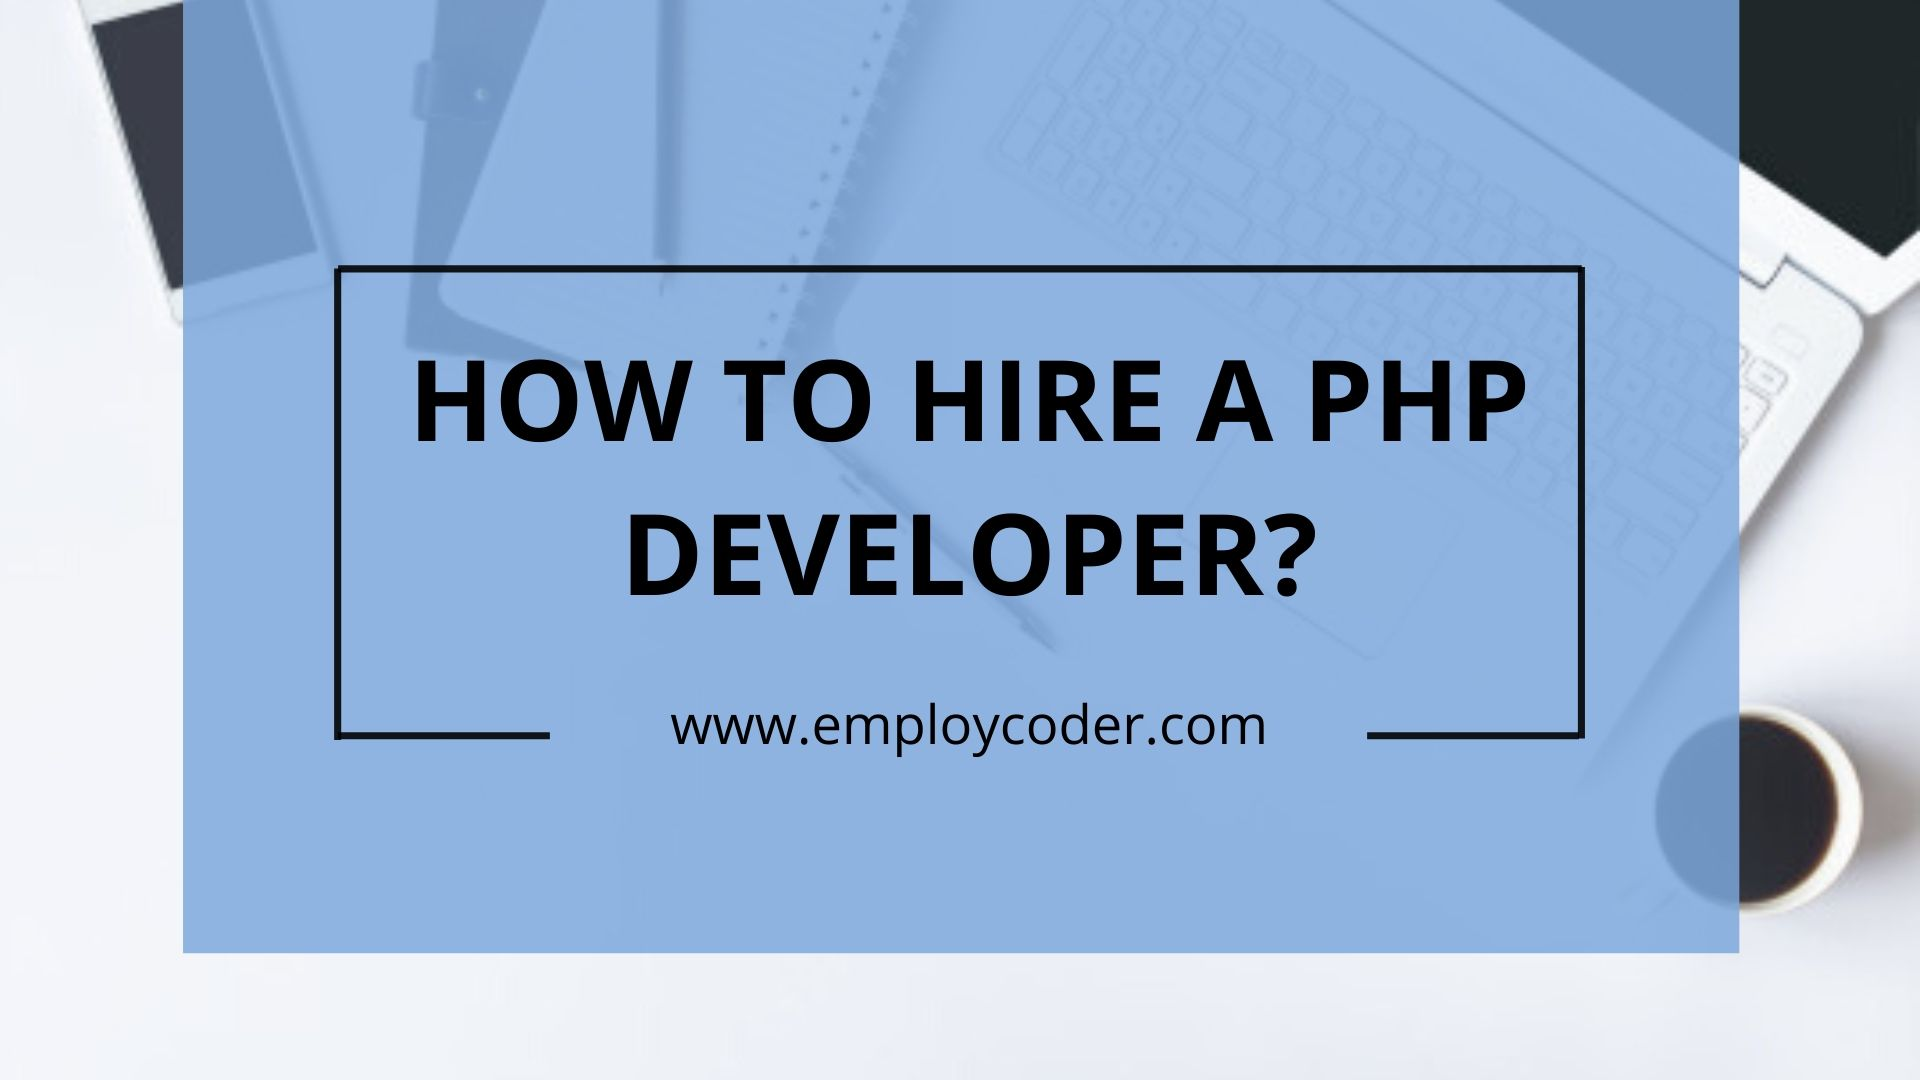 How to Hire a PHP Developer?